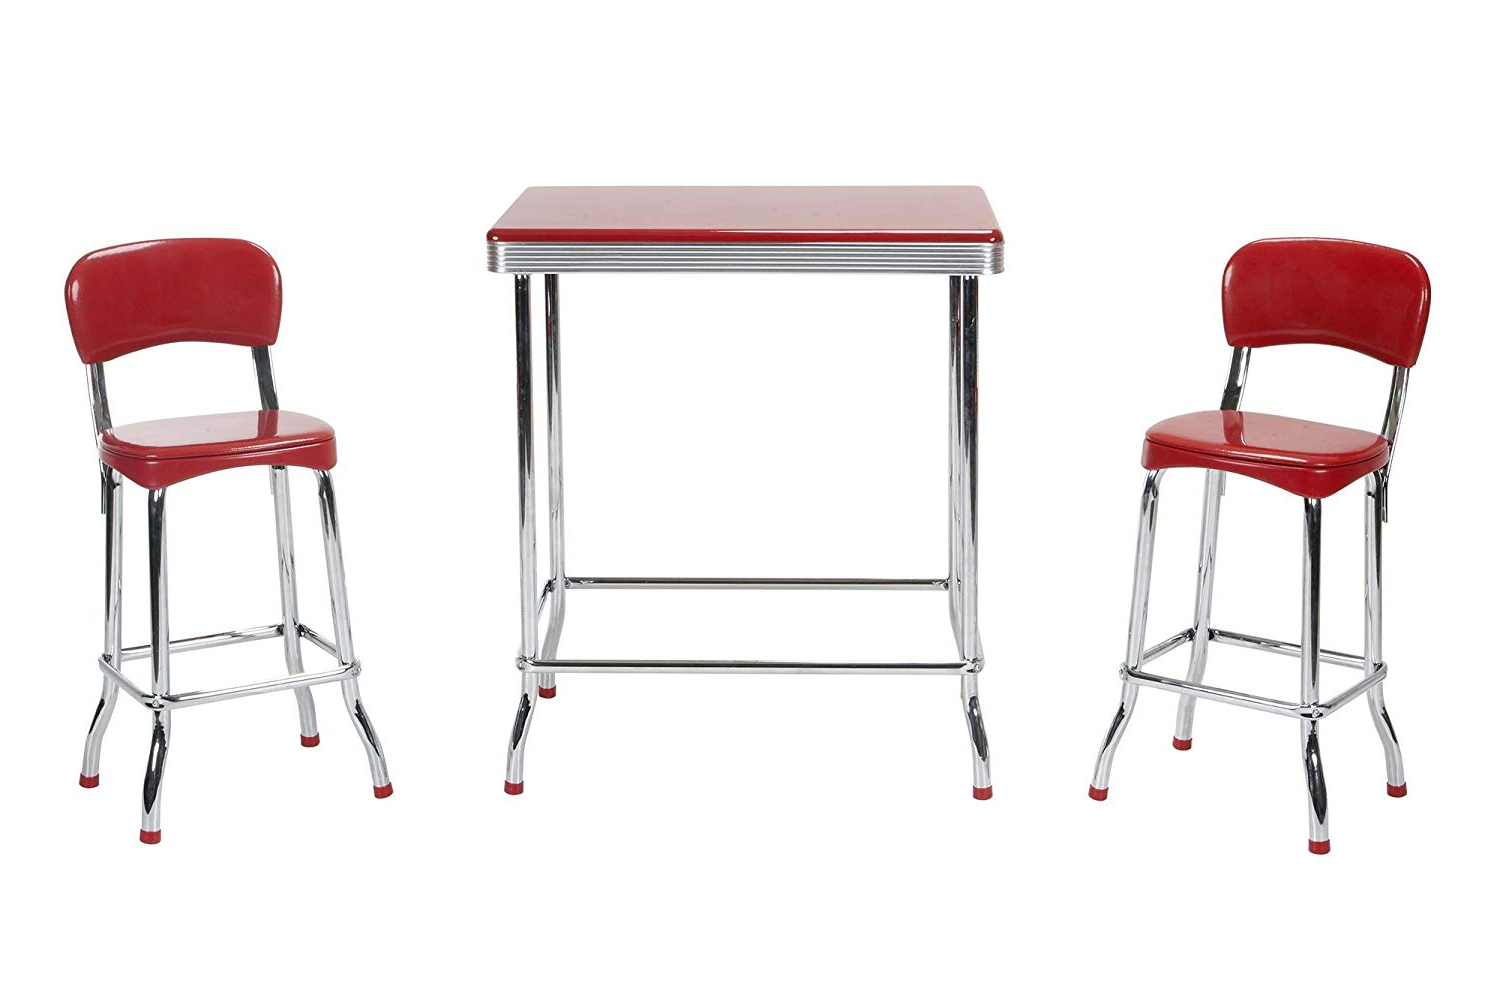 Cosco 14223Red1E Stylaire 3 Piece High Top Set, Red & Chrome For 2018 Bate Red Retro 3 Piece Dining Sets (View 6 of 20)